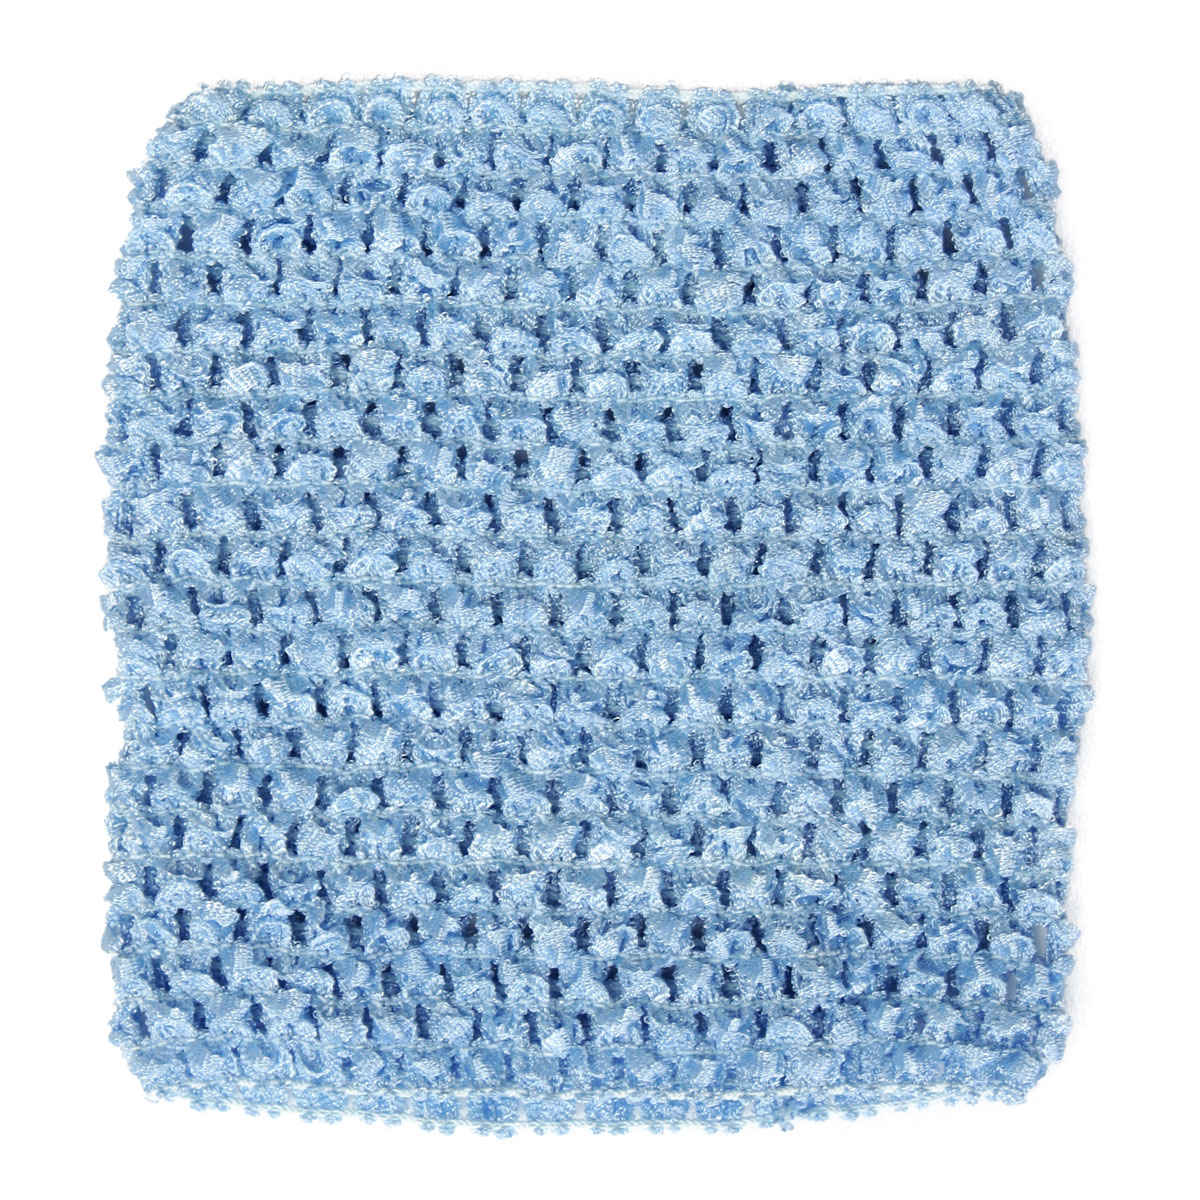 Woven Crochet Tube Top Elastic Waistband Headband For Baby Girls Tutu Dress DIY 15cm x 14cm